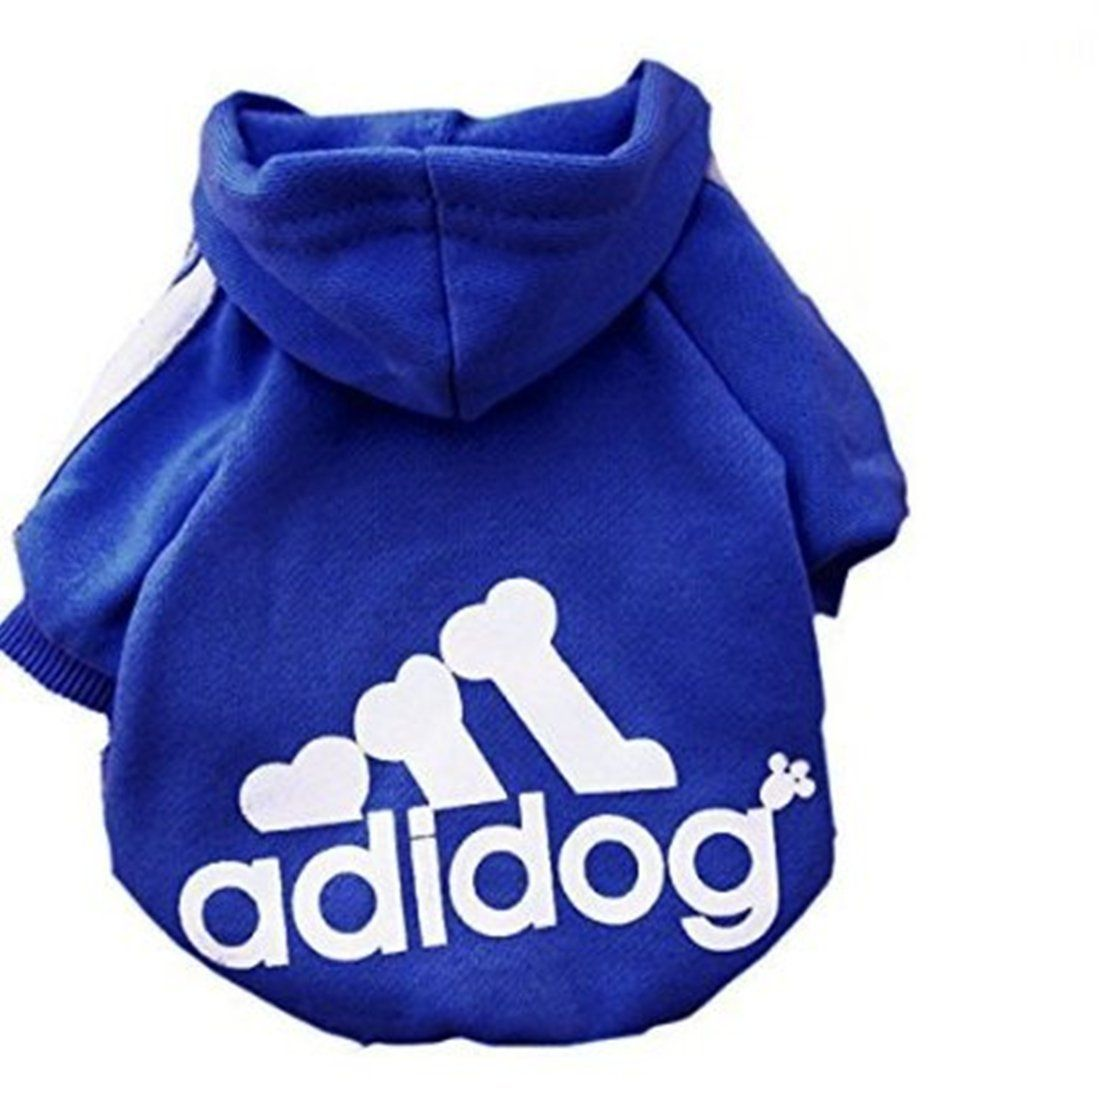 Pet Dog Clothes Coat Soft Cotton Adidog Clothing 7 Colors Small Size S M L Xl Xxl Dog Jacket Special Product Just Fo Sweater Puppy Pet Clothes Dog Clothes [ 1100 x 1100 Pixel ]